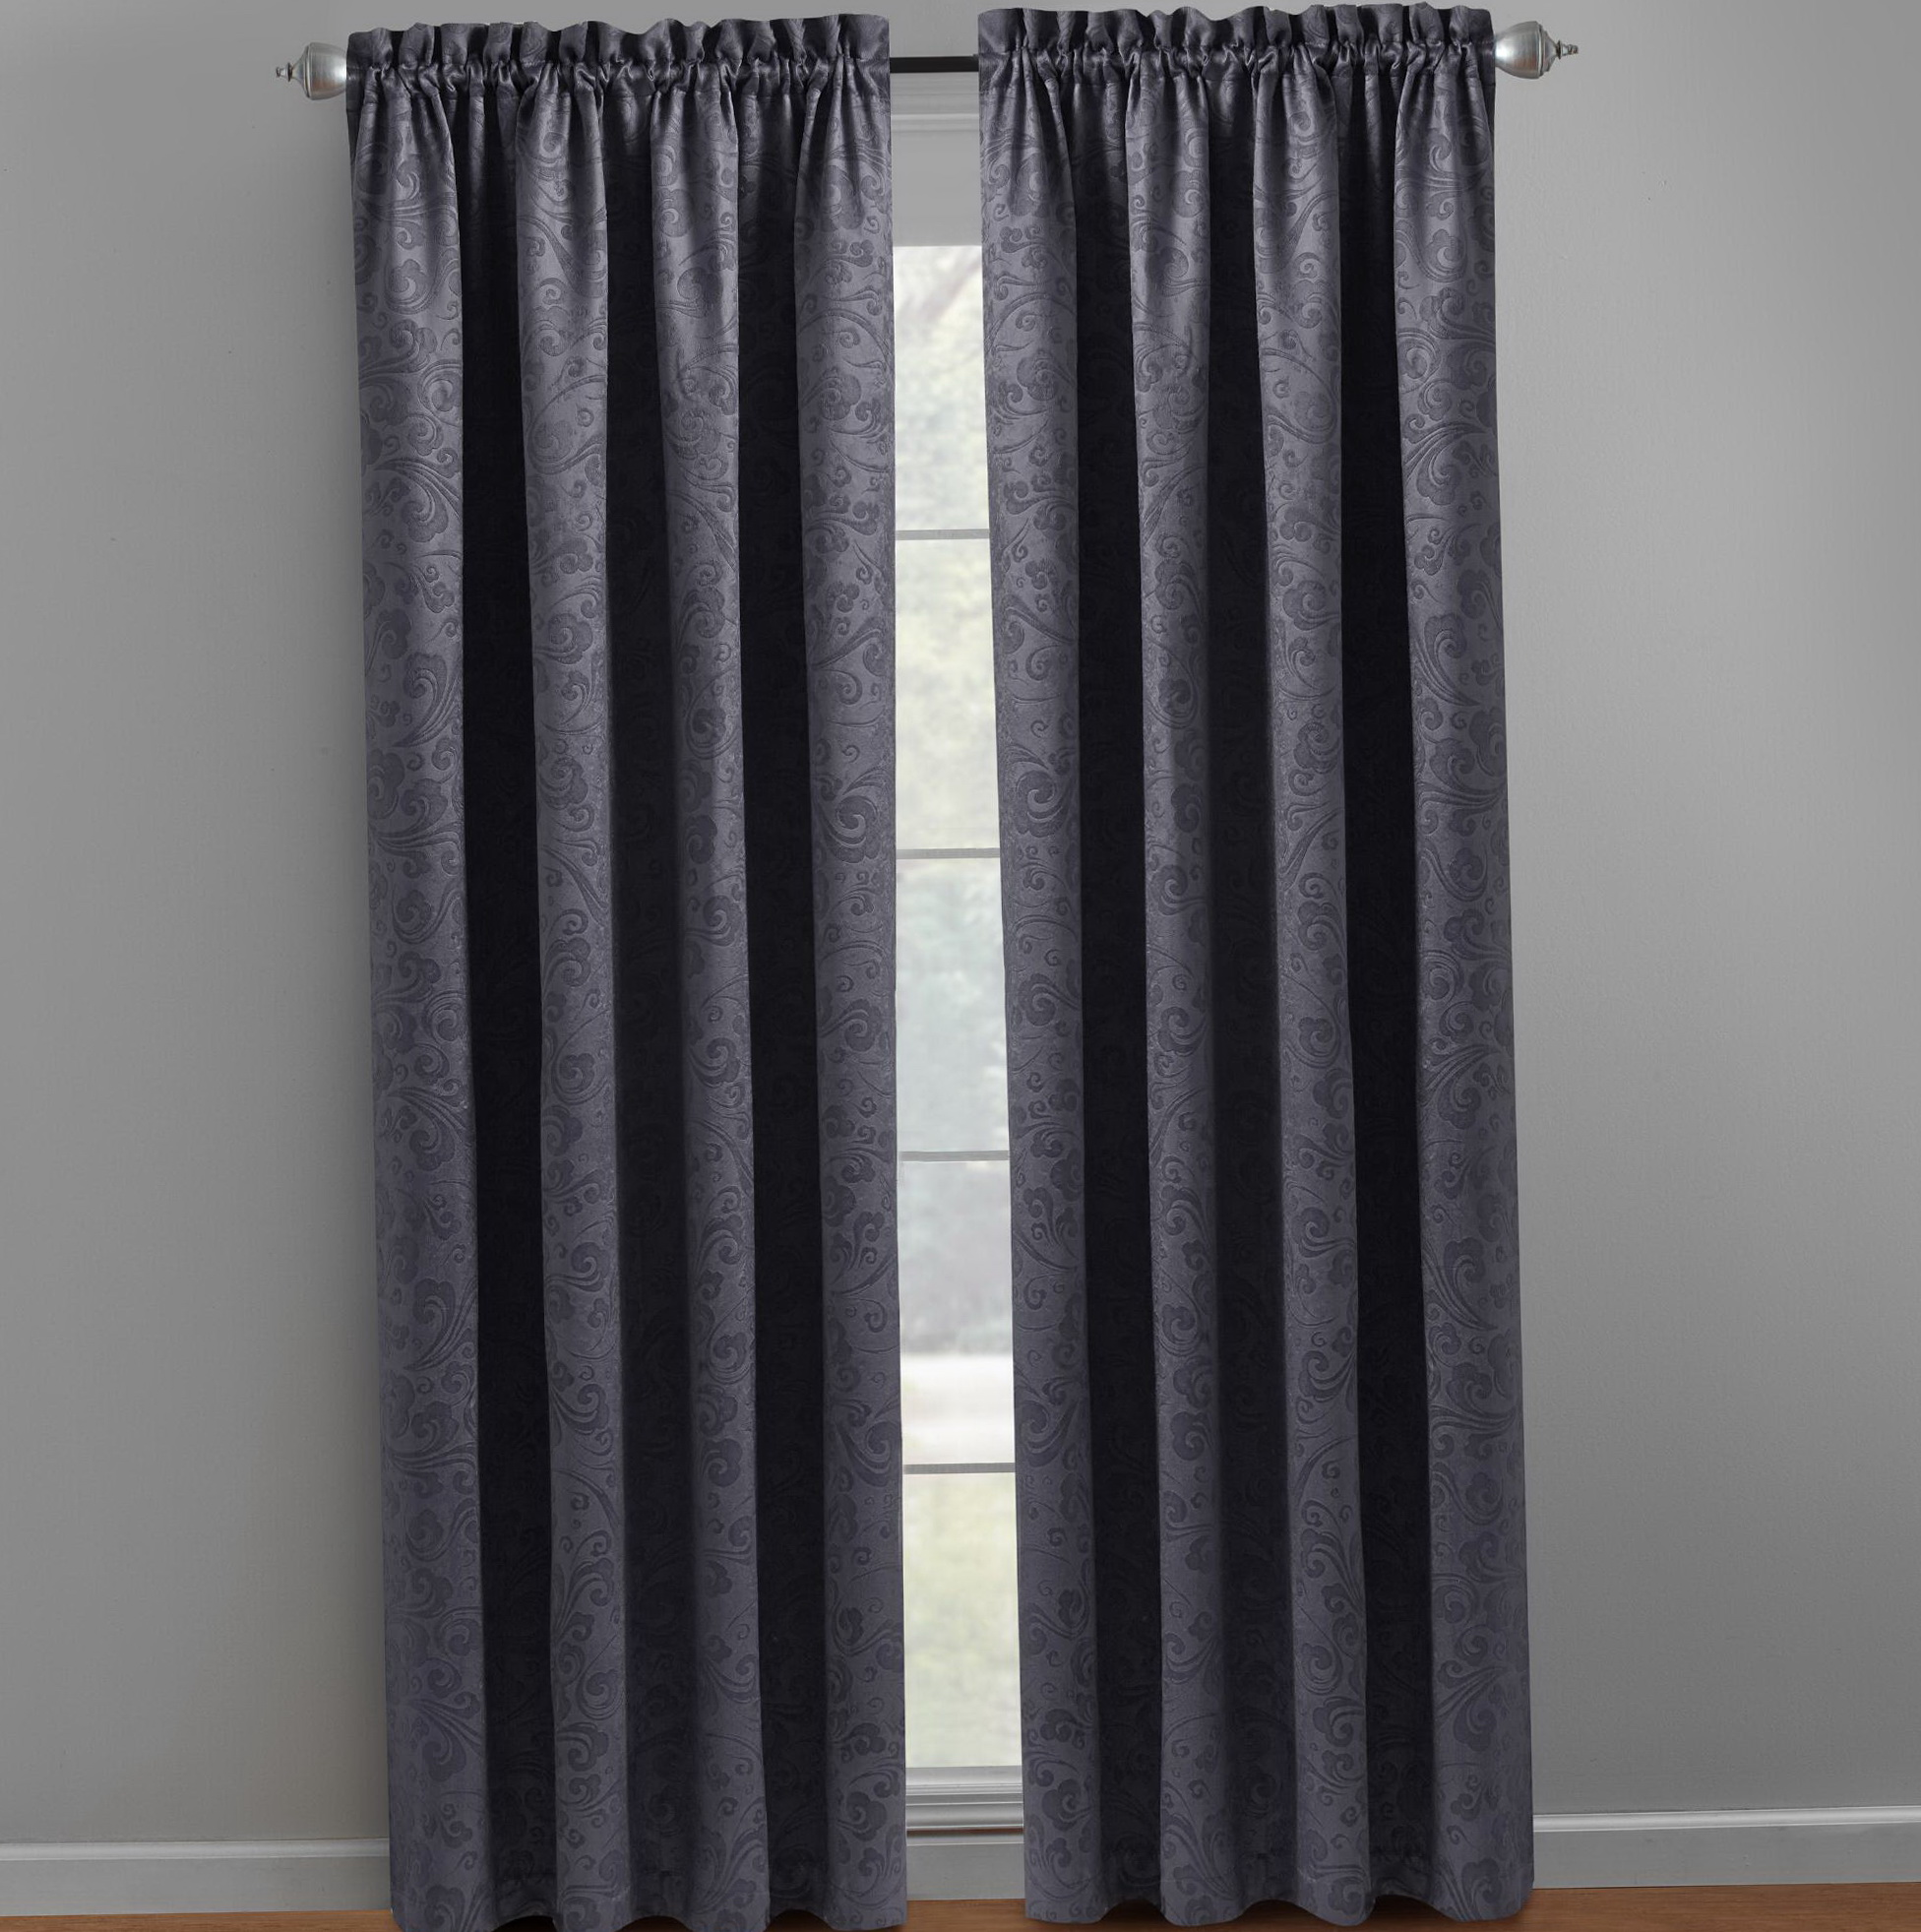 Blackout Curtains In World War 2 | Home Design Ideas for Blackout Curtains Ww2  111ane